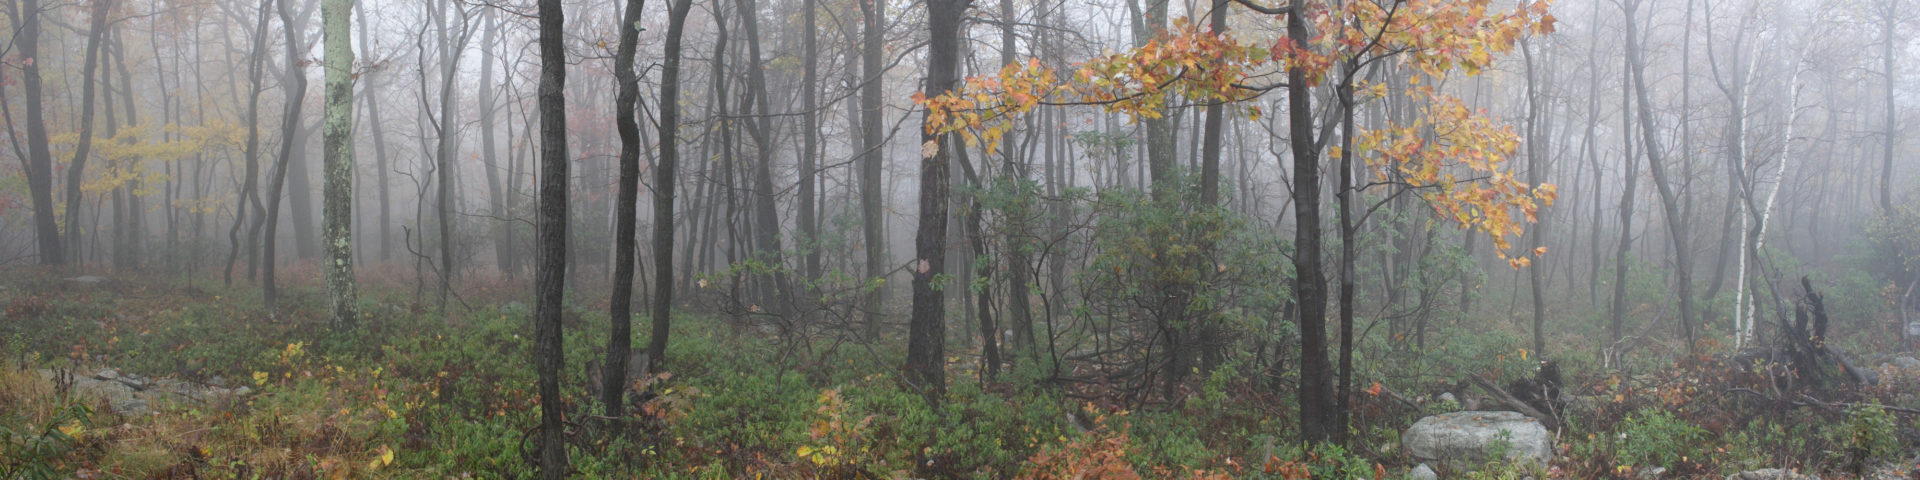 foggy_woods